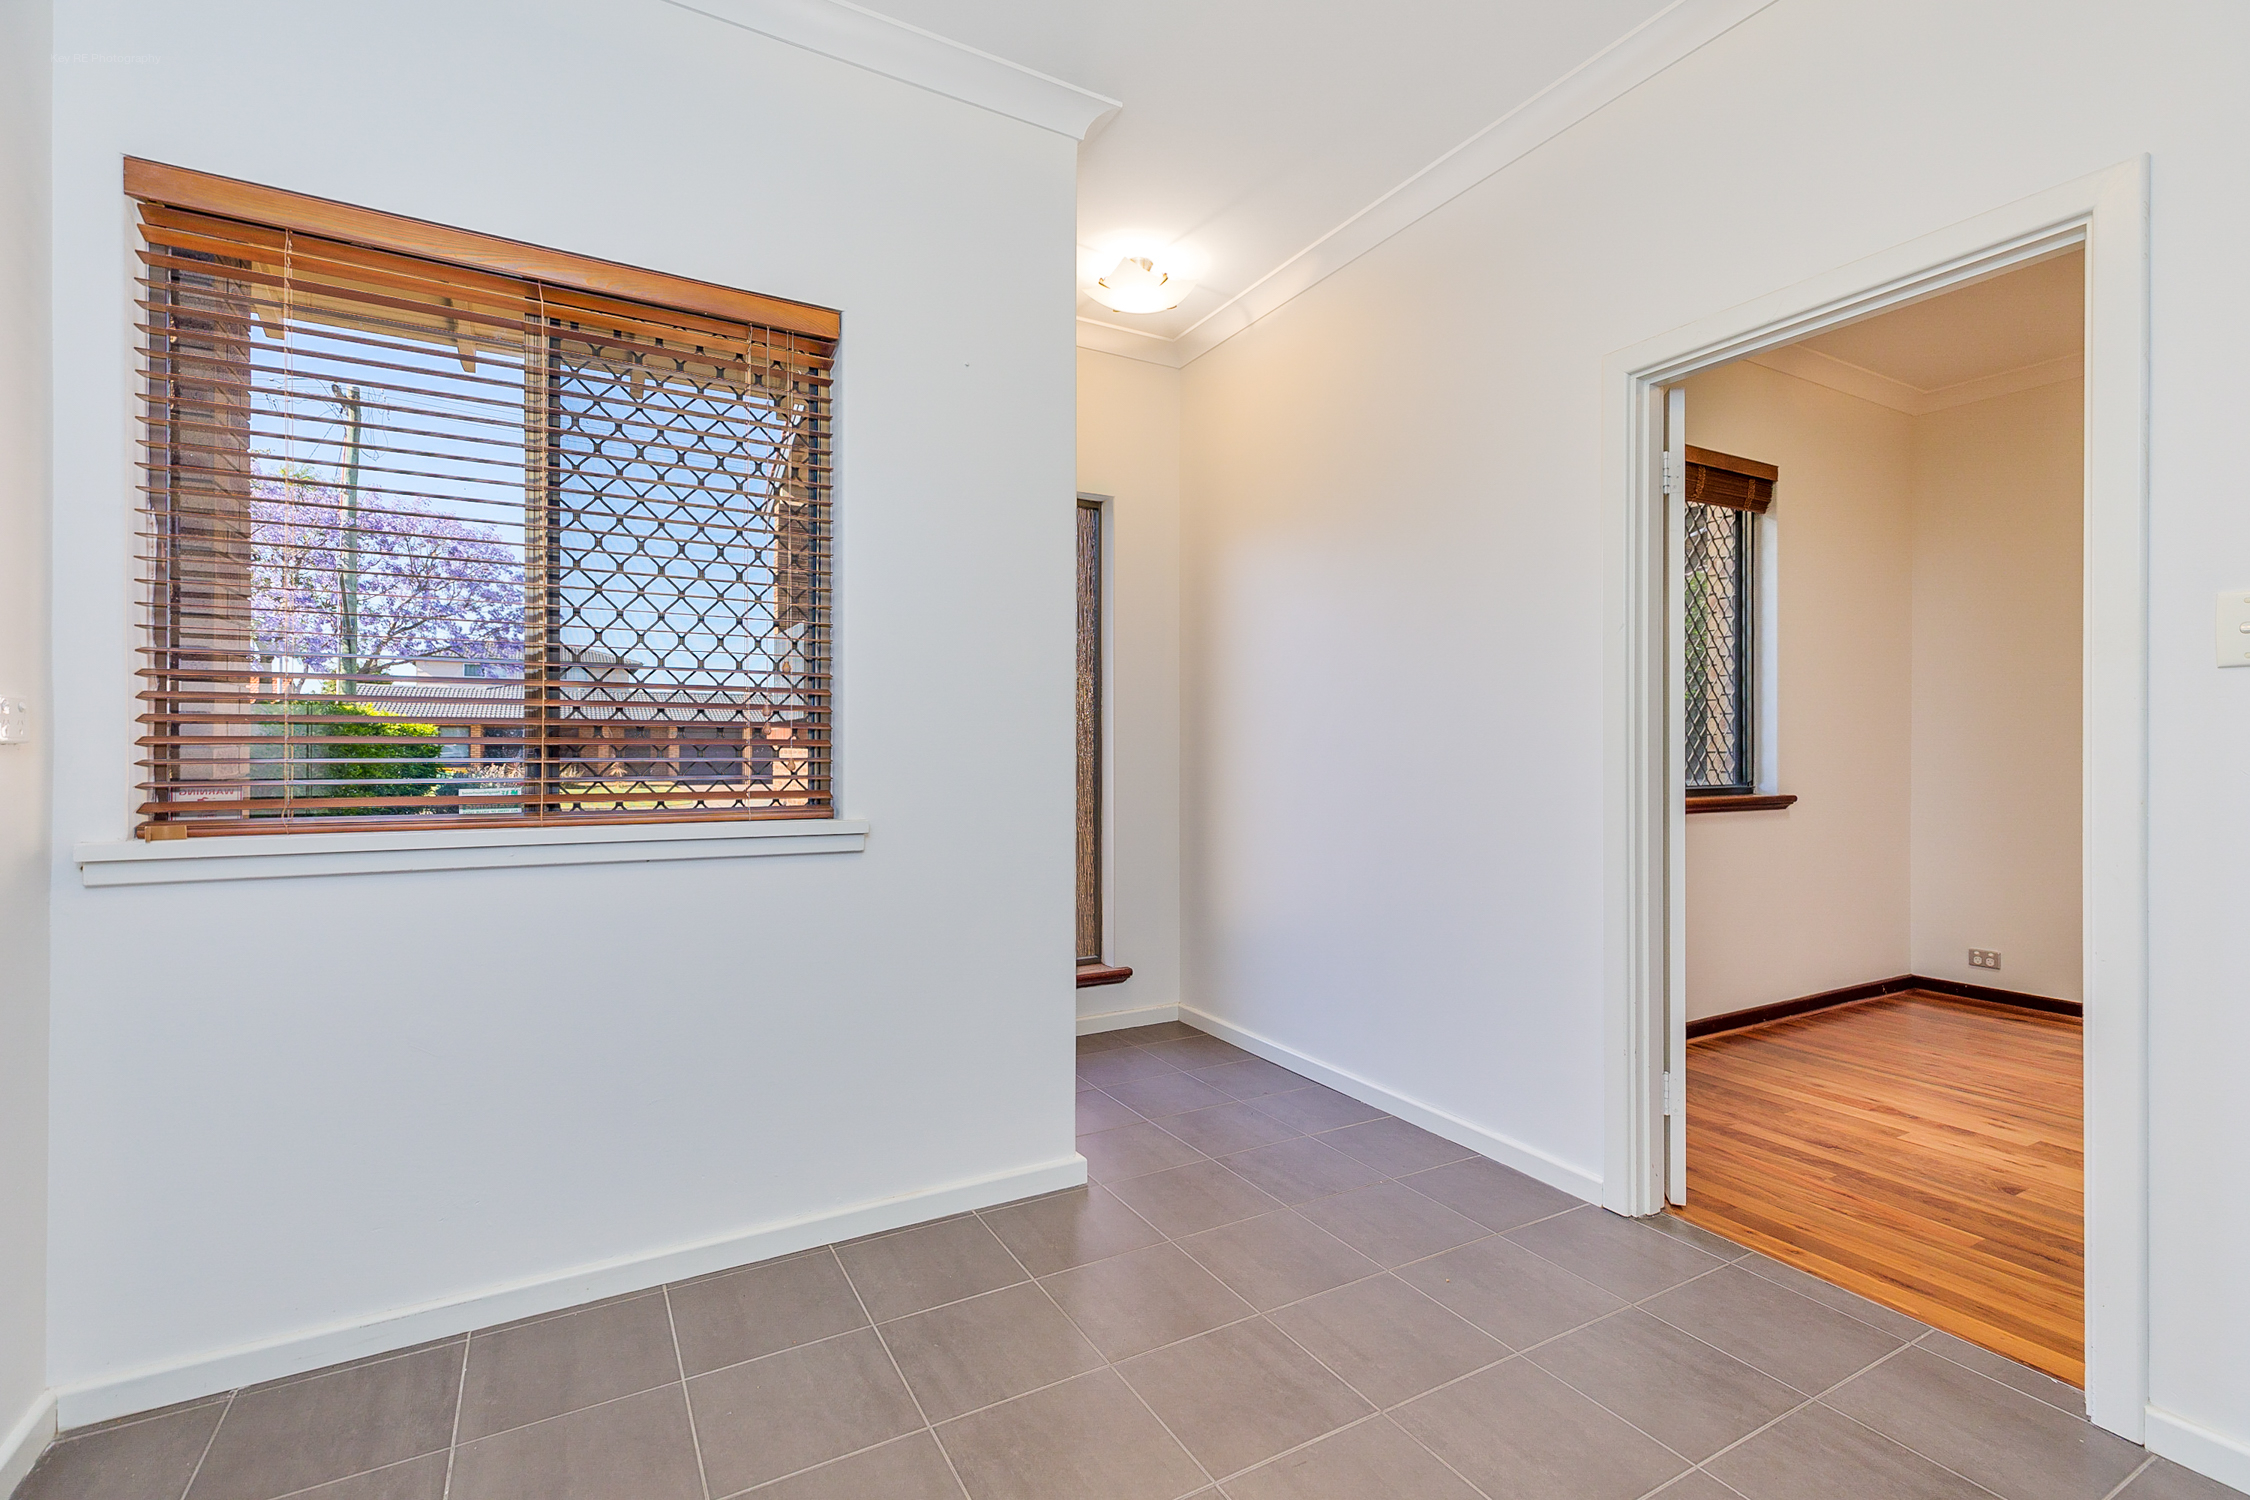 Property for sale in BOORAGOON, 8 Bolger Place : Attree Real Estate